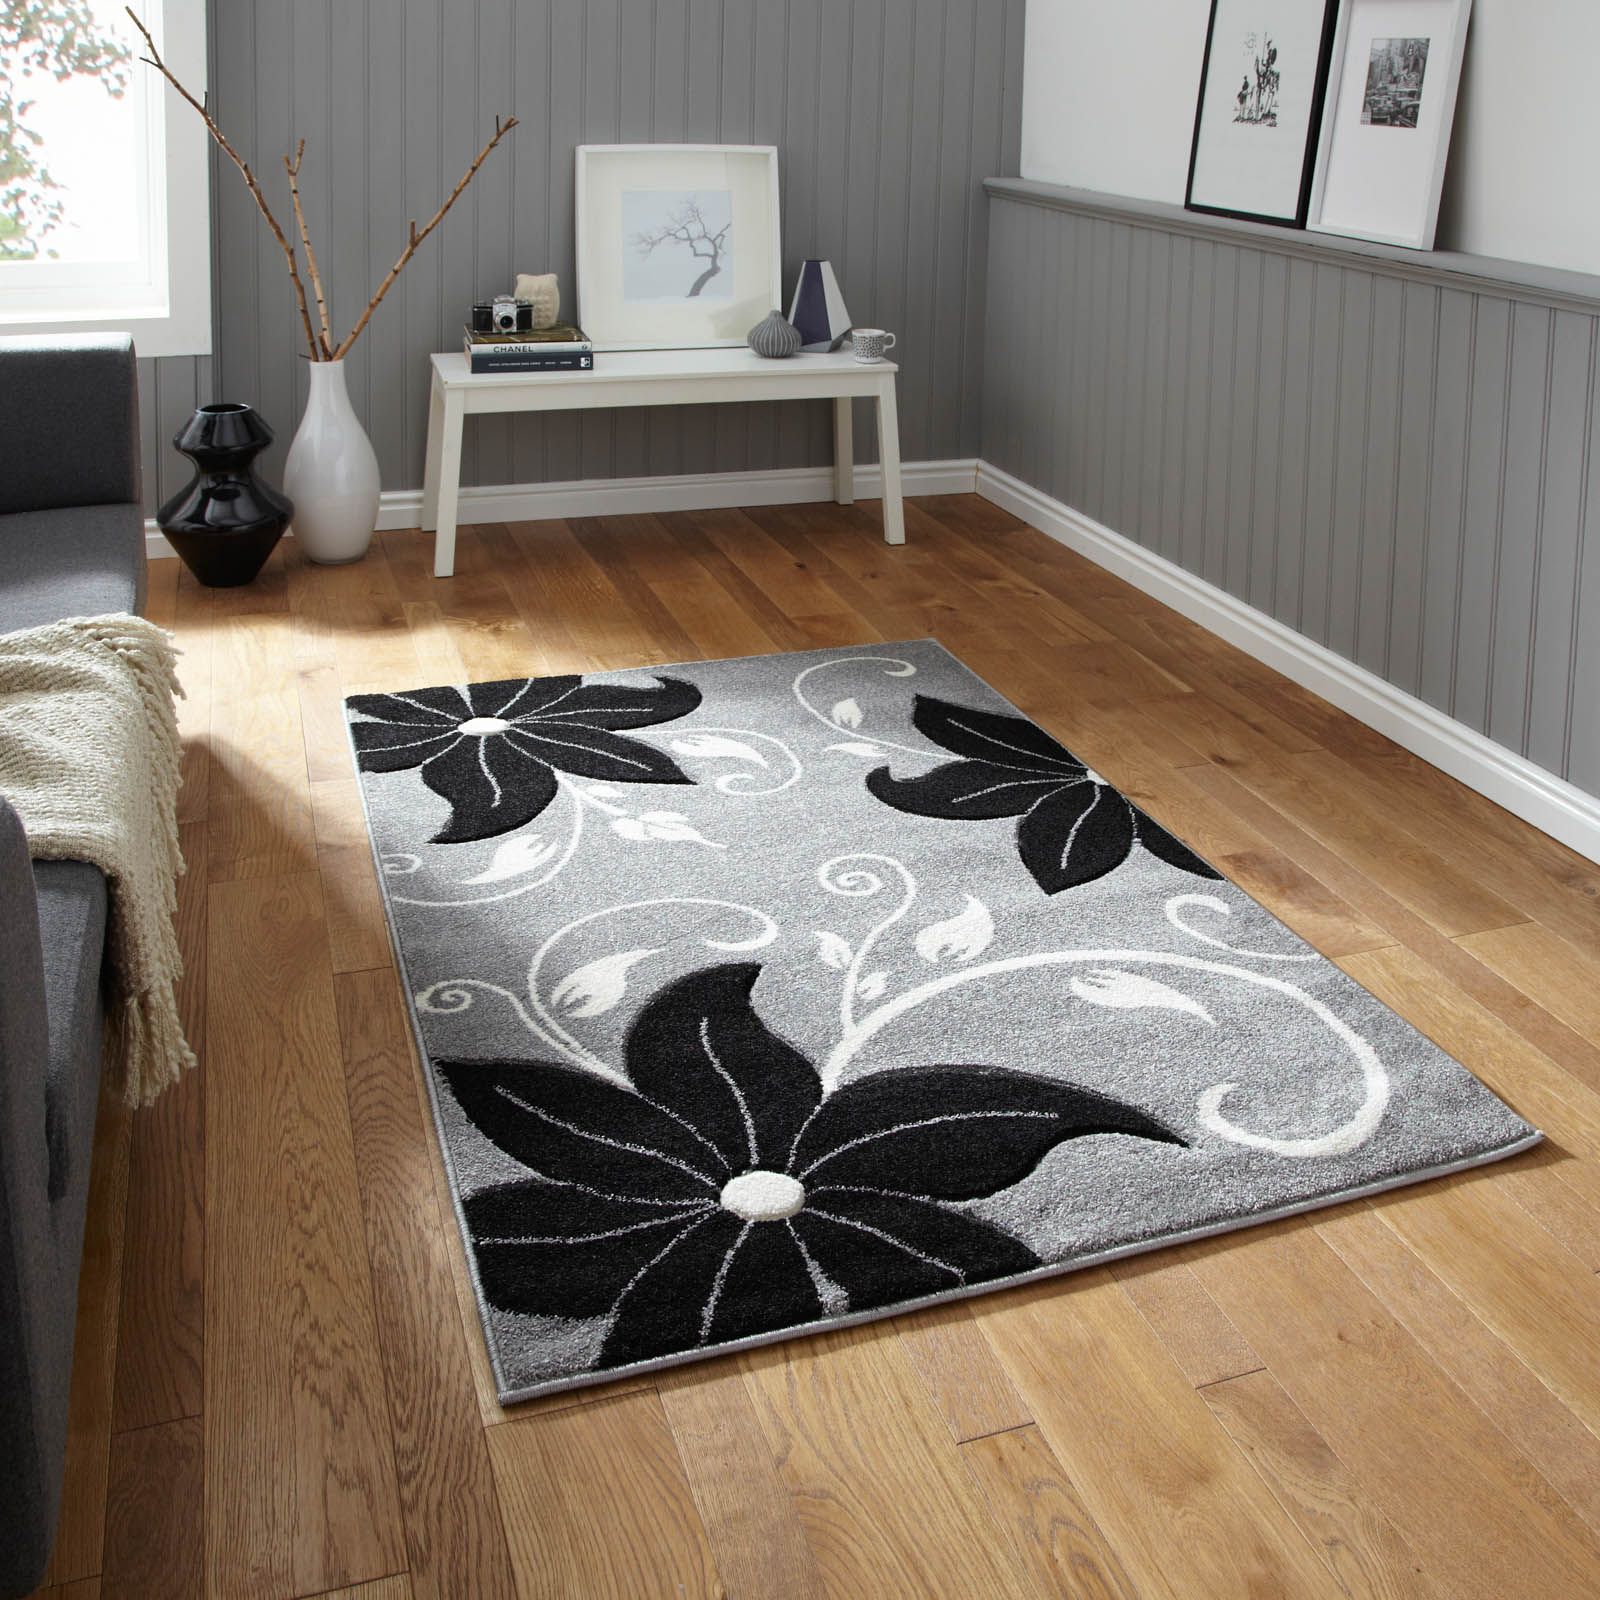 Verona Rug for student bedroom rugs